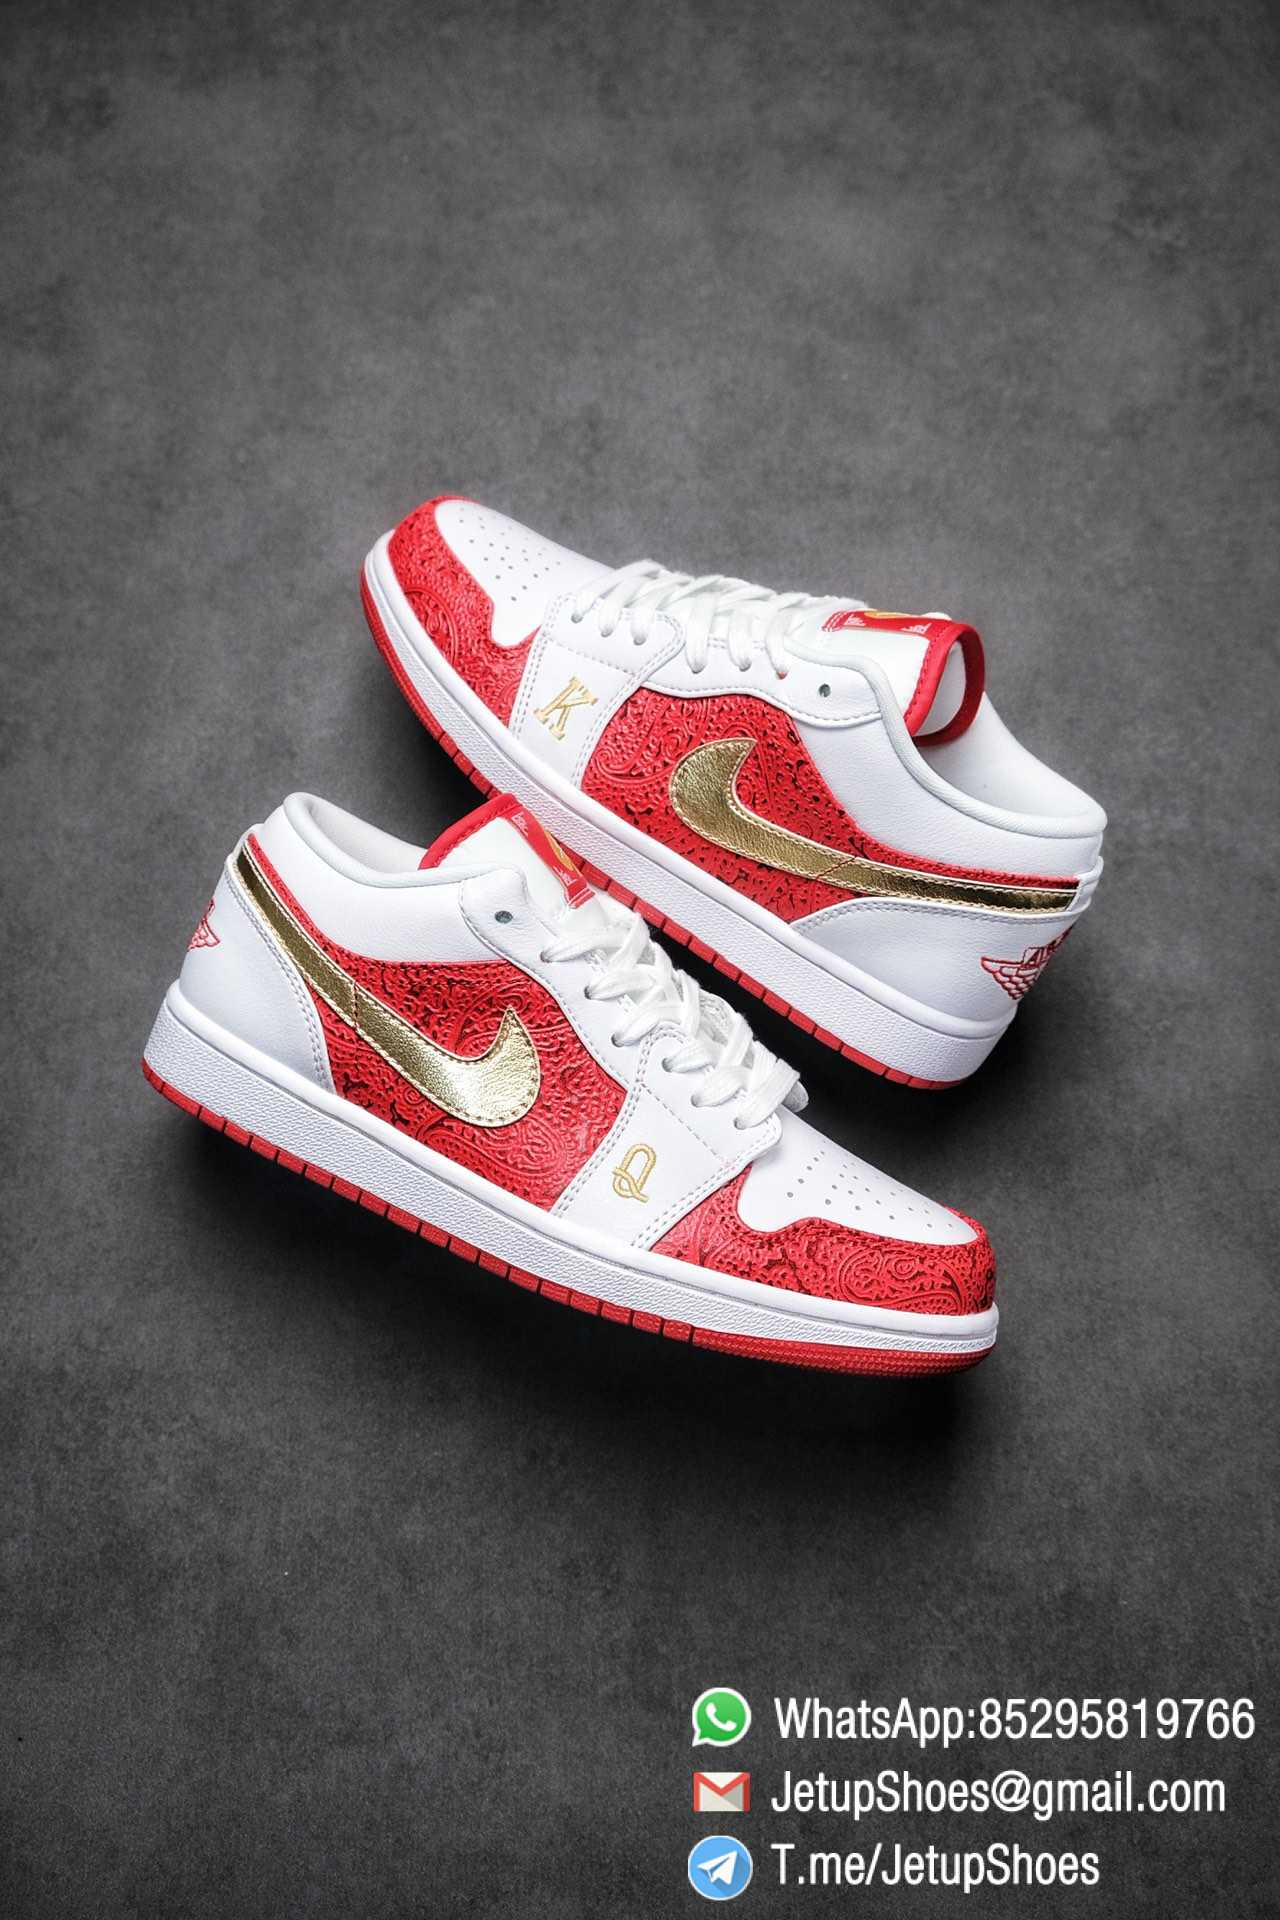 RepSnkrs Air Jordan 1 Low SE 'Spades' White Leather Base Red Rubber Outsole Embroidered letters 'K' & 'Q' Best Replica Sneakers